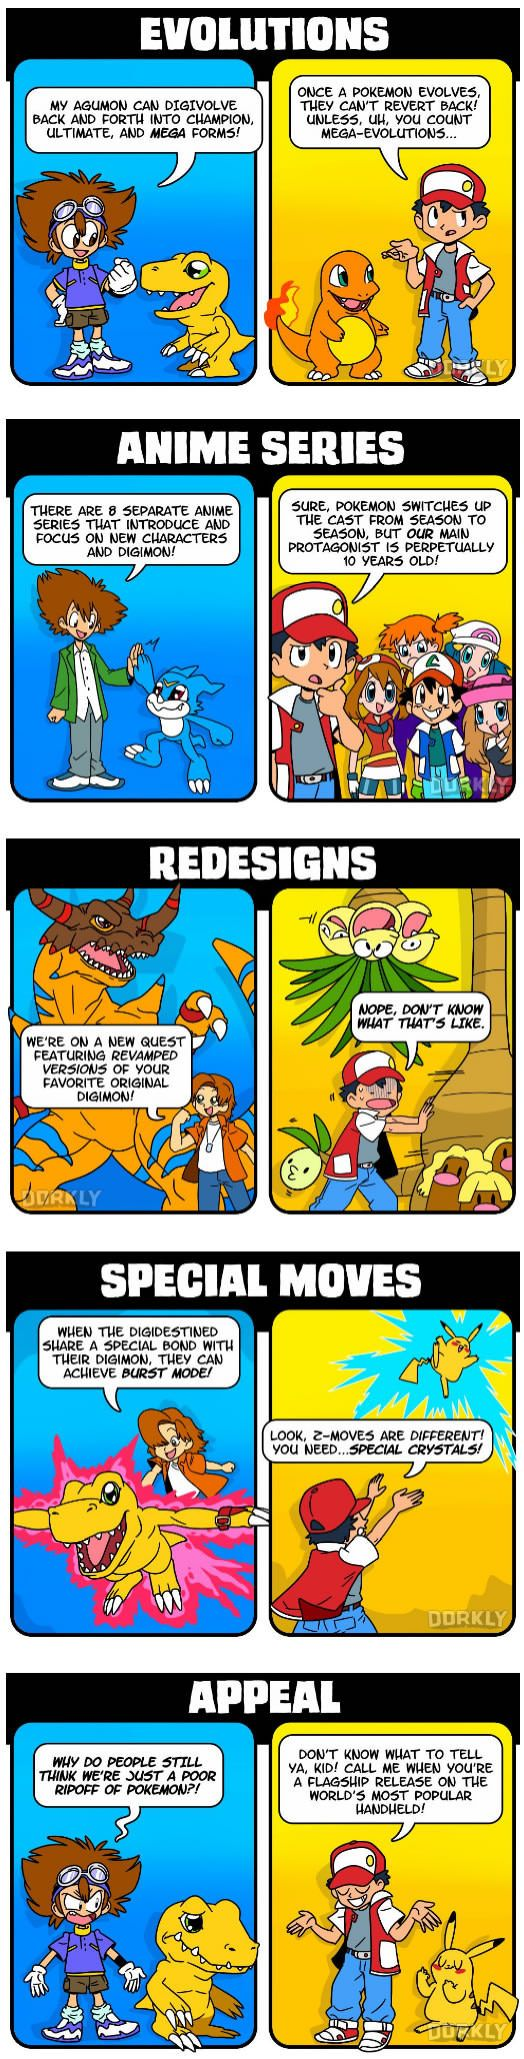 """Don't understand why Digimon is considered a """"ripoff"""" of Pokemon. Once you think about it it's sorta its own thing. Sure Pokemon started the whole """"command your monster"""" thing but Digimon is different."""